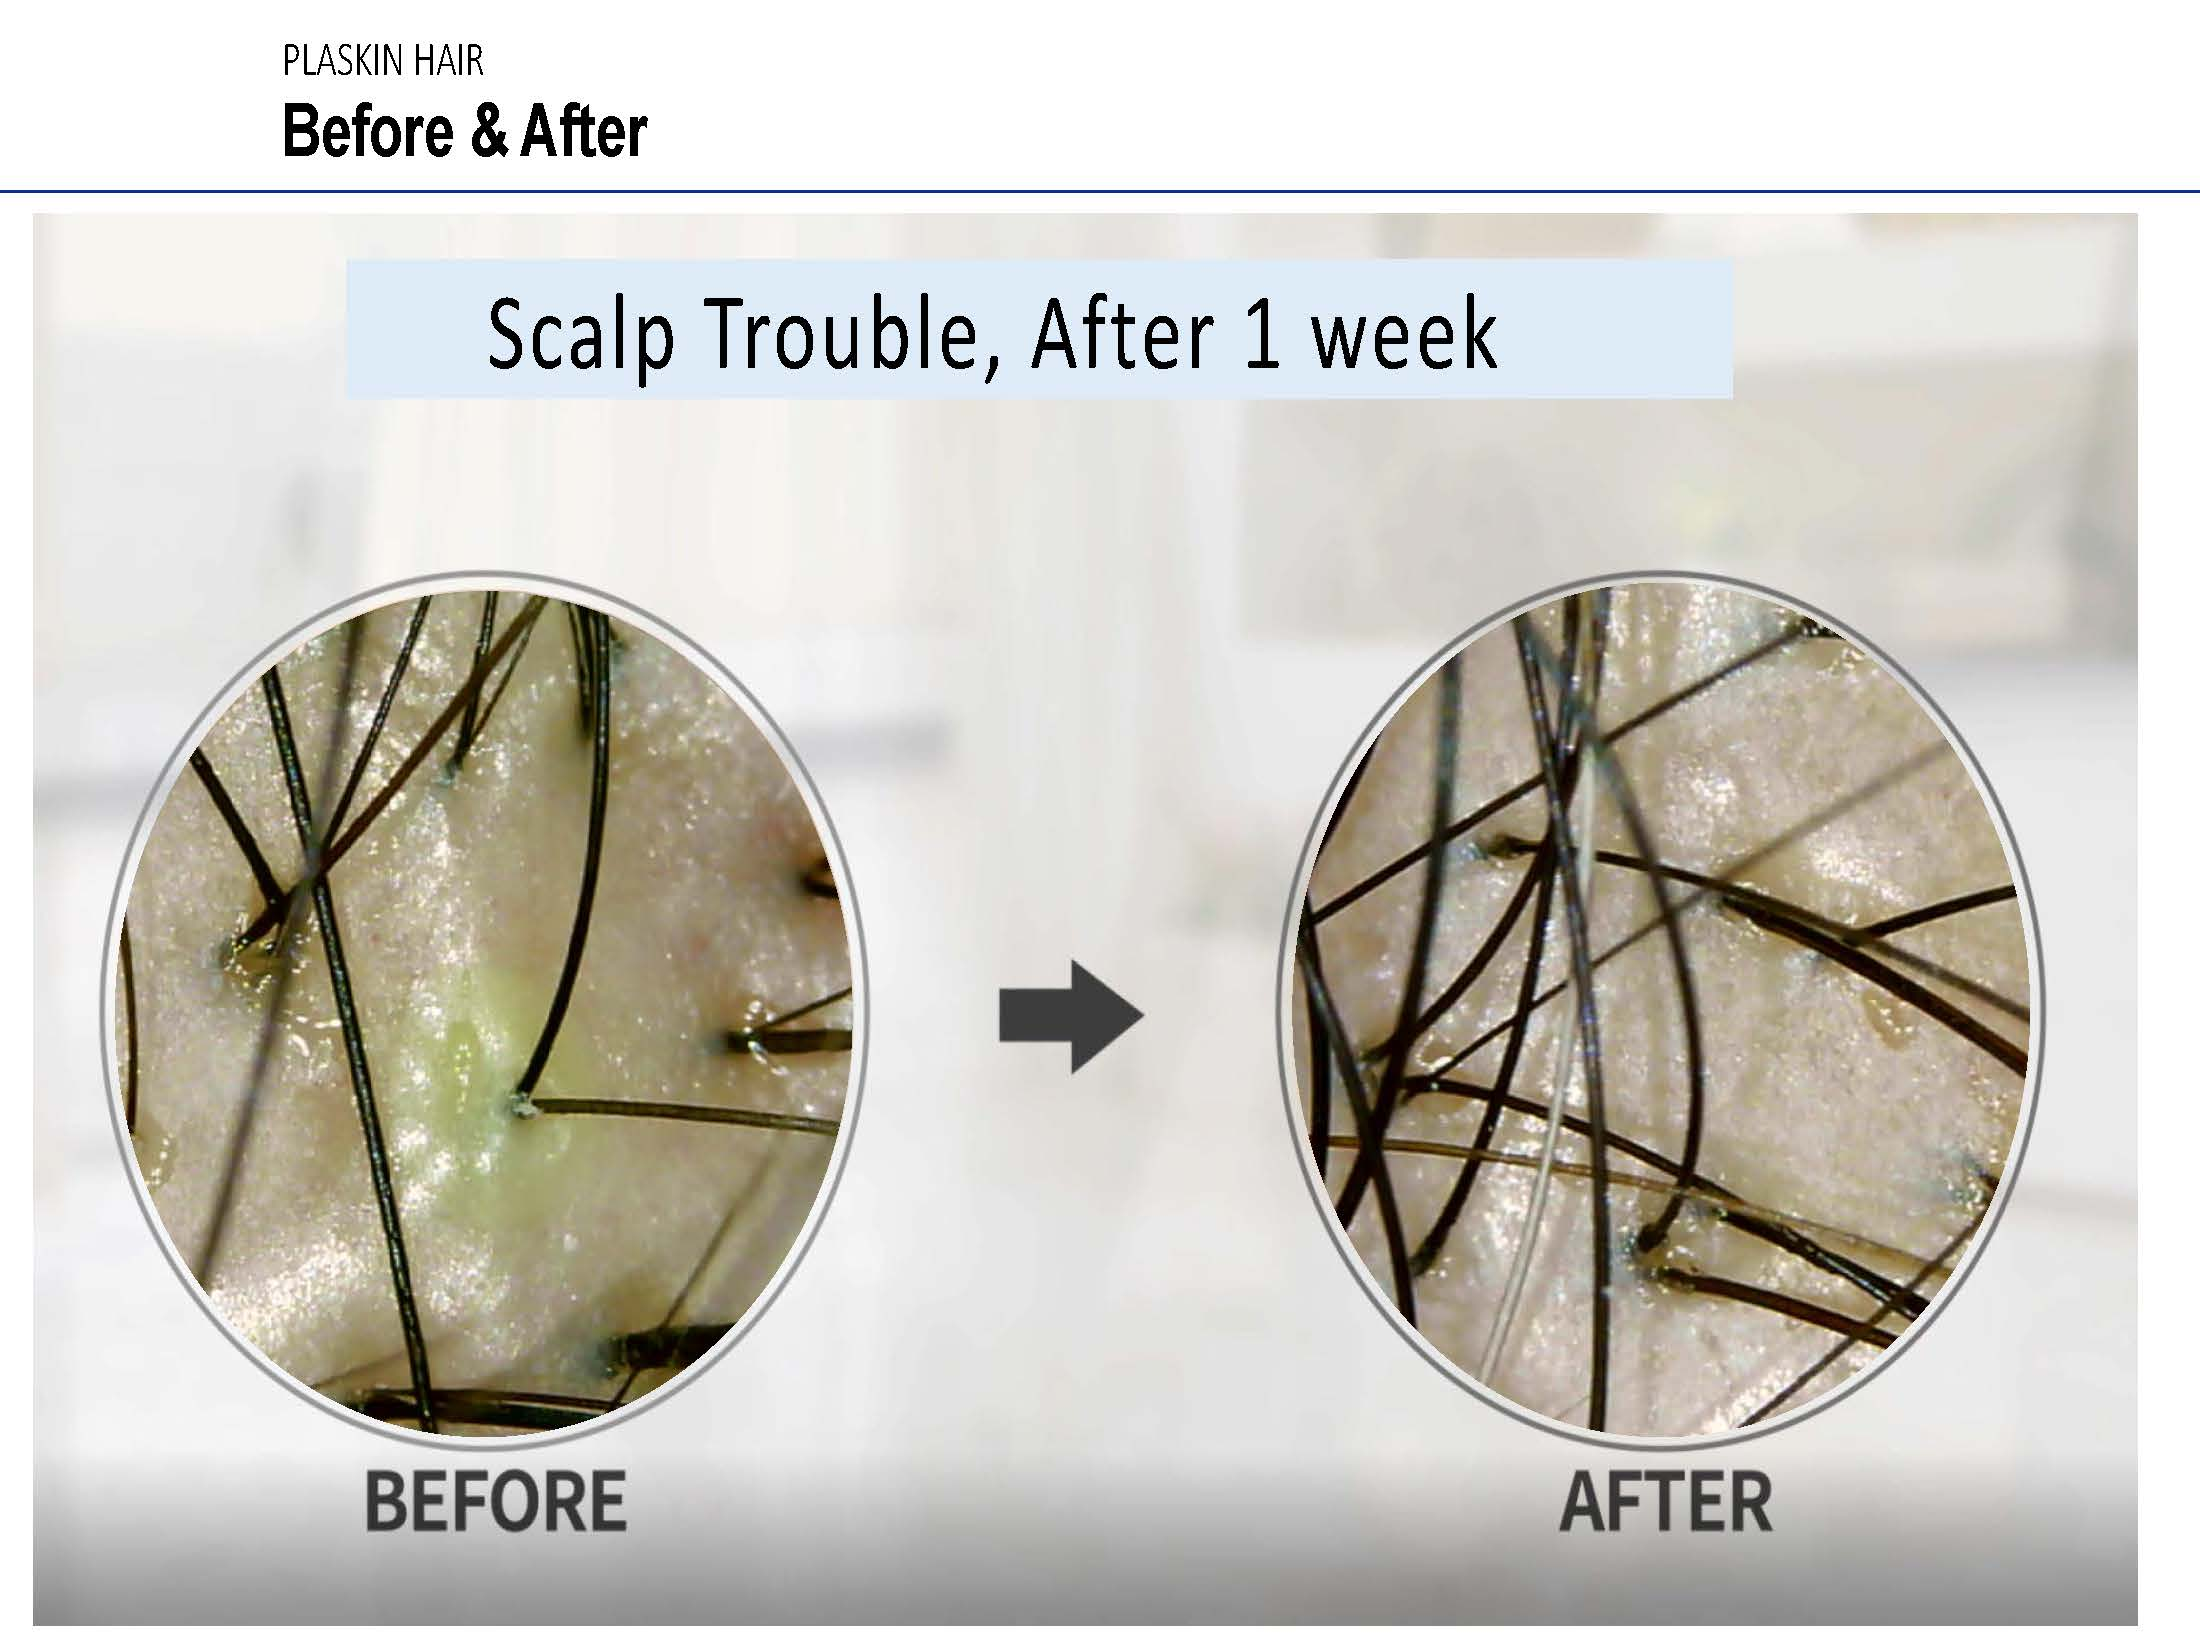 scalp trouble examples__Page_11.jpg